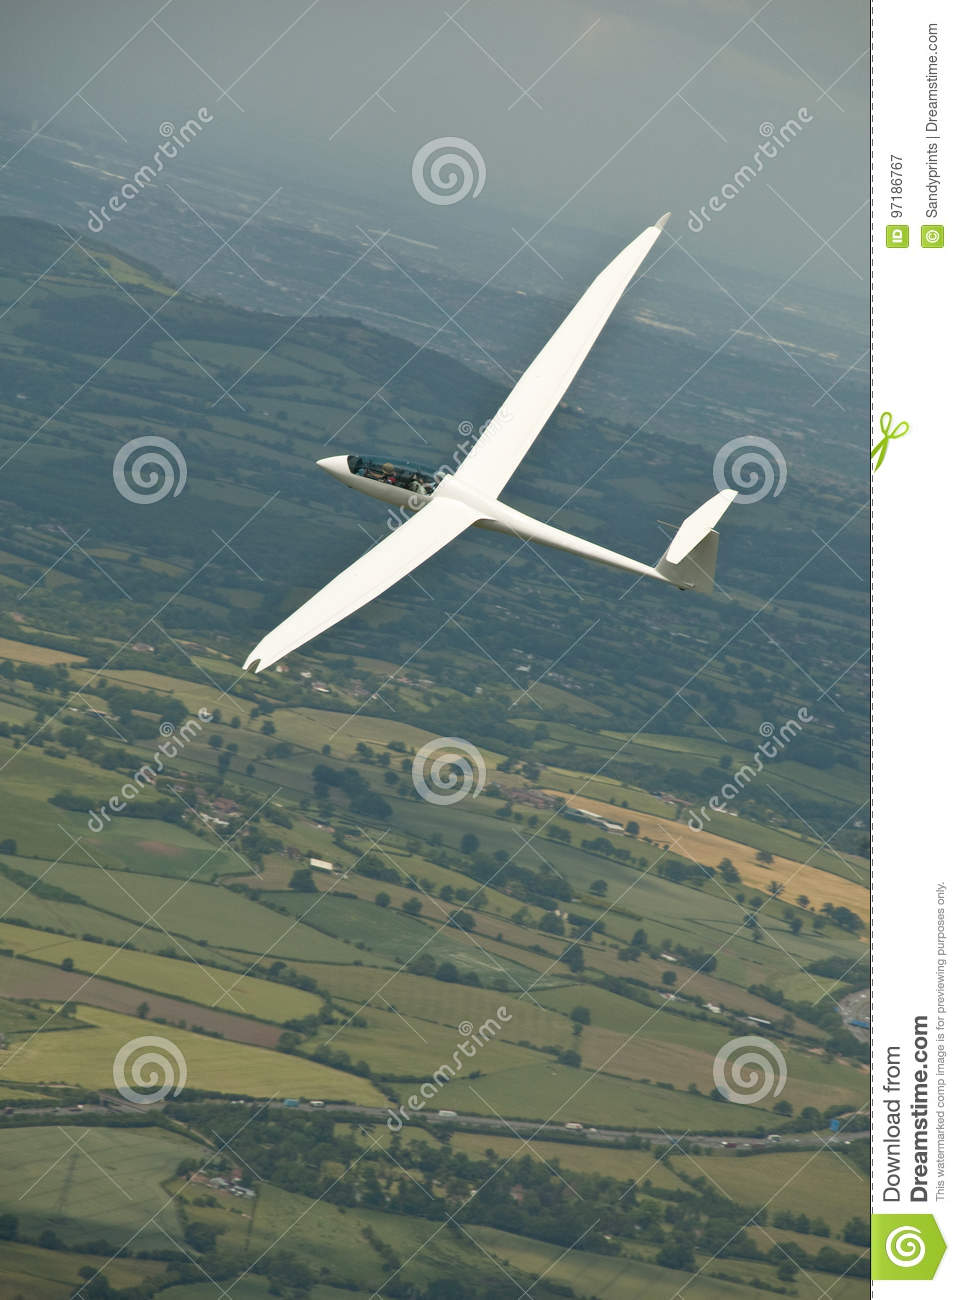 glider sailplane flying over countryside stock image image of